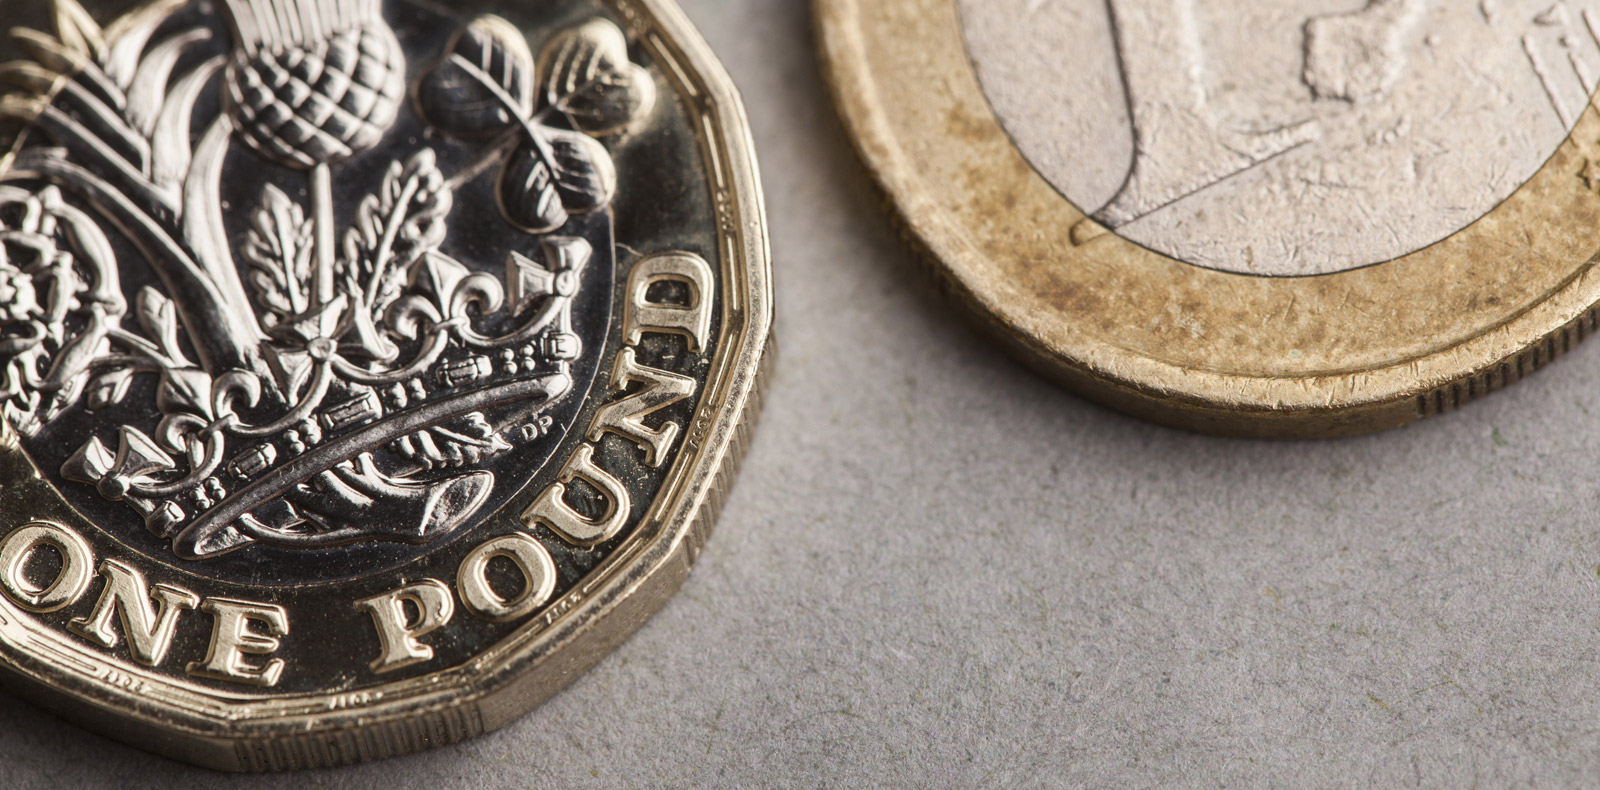 Pound reaches near 8-month high on the back of data projections indicating a Conservative majority parliament in the upcoming December election.